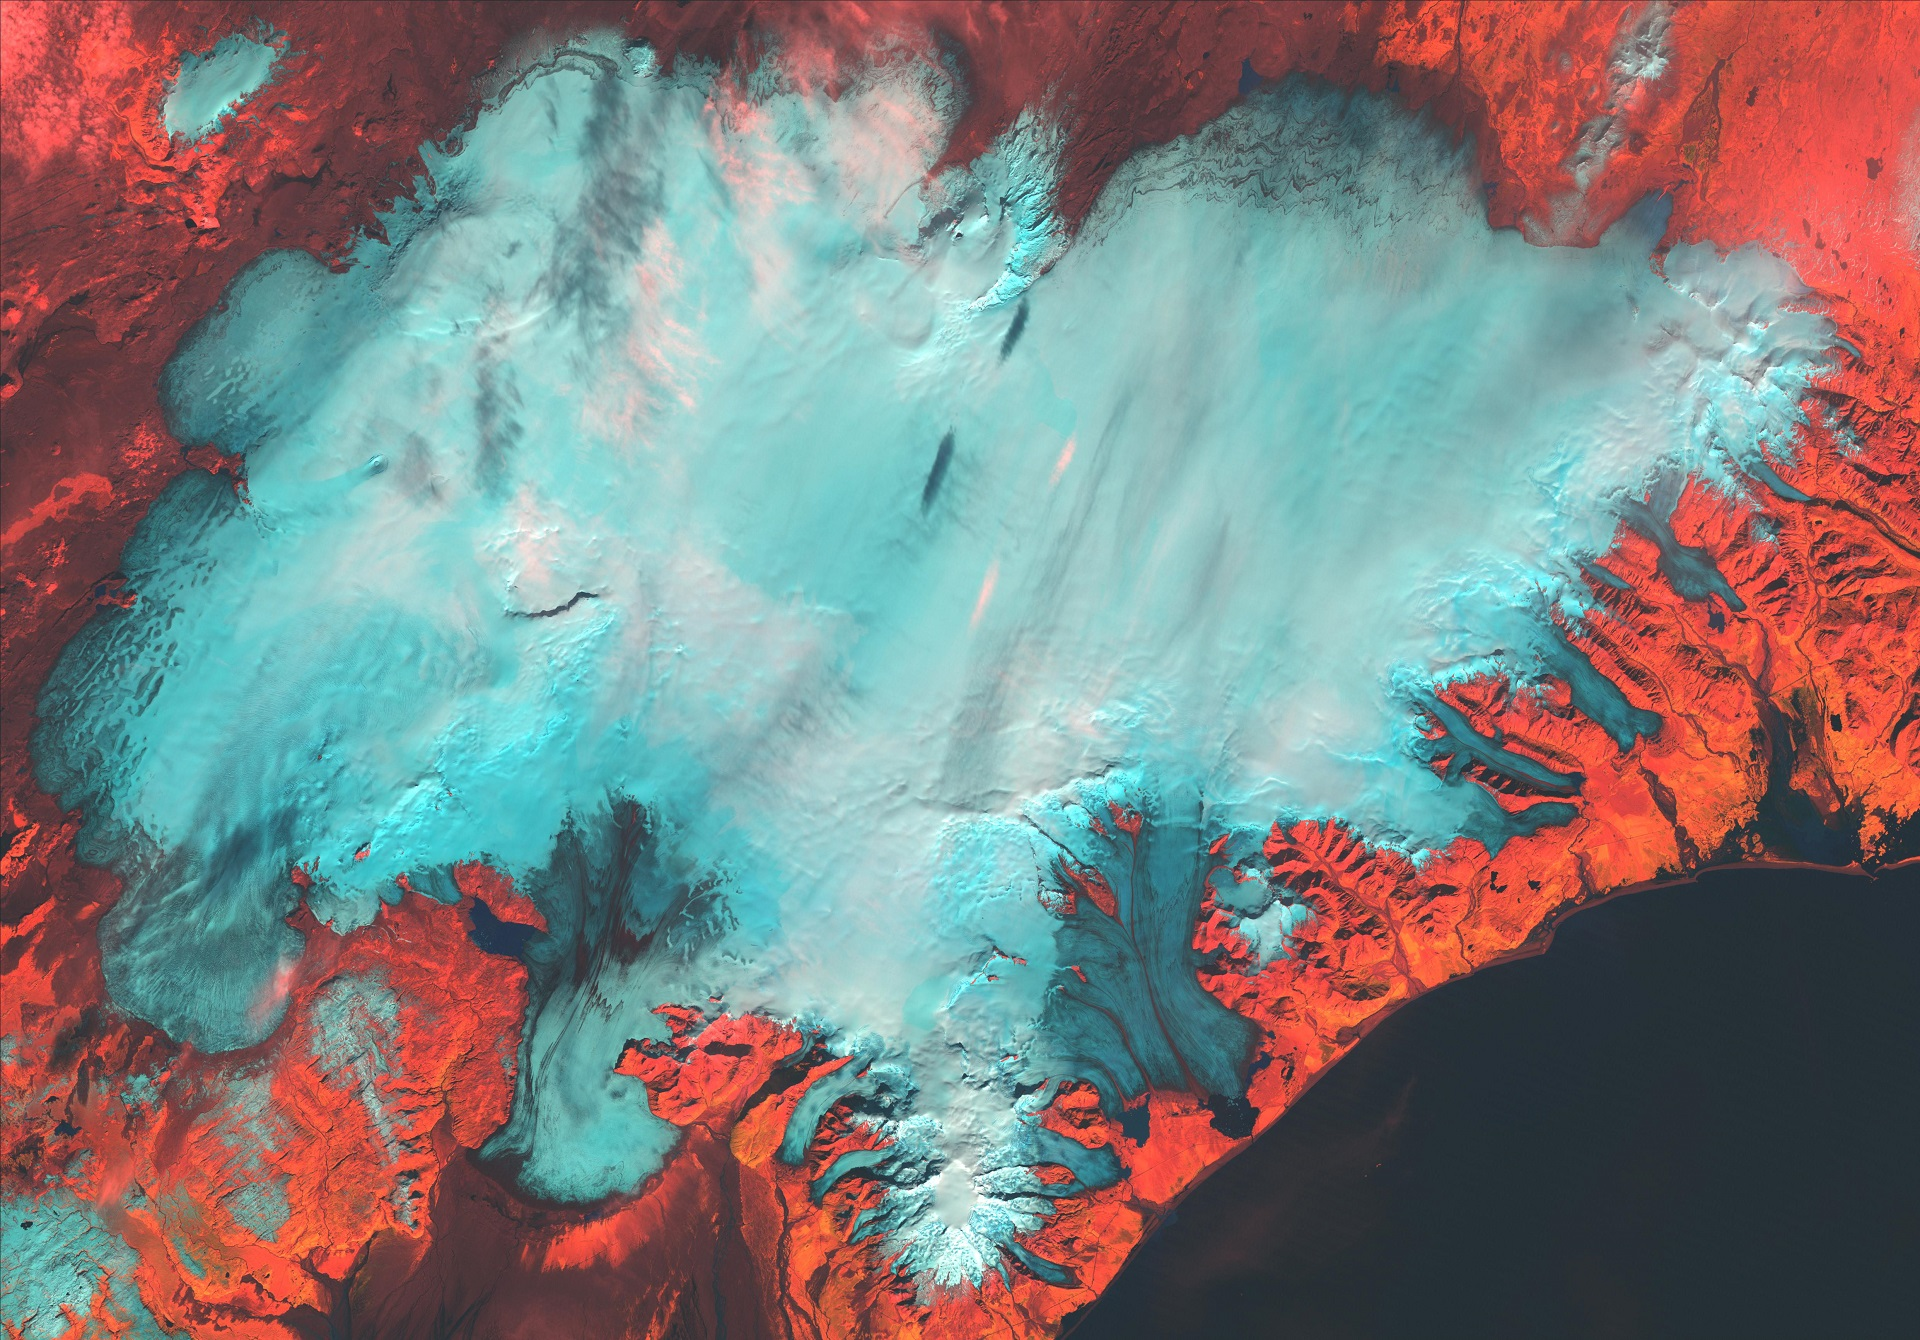 Landsat satellite image from the fall of 1994. The snowline is visible and clearly marks the boundary between the white snow-covered surface of the accumulation areas vs the darker glacial ice in the ablation area. On temperate glaciers, the autumn snowline is often defined as the equilibrium line.